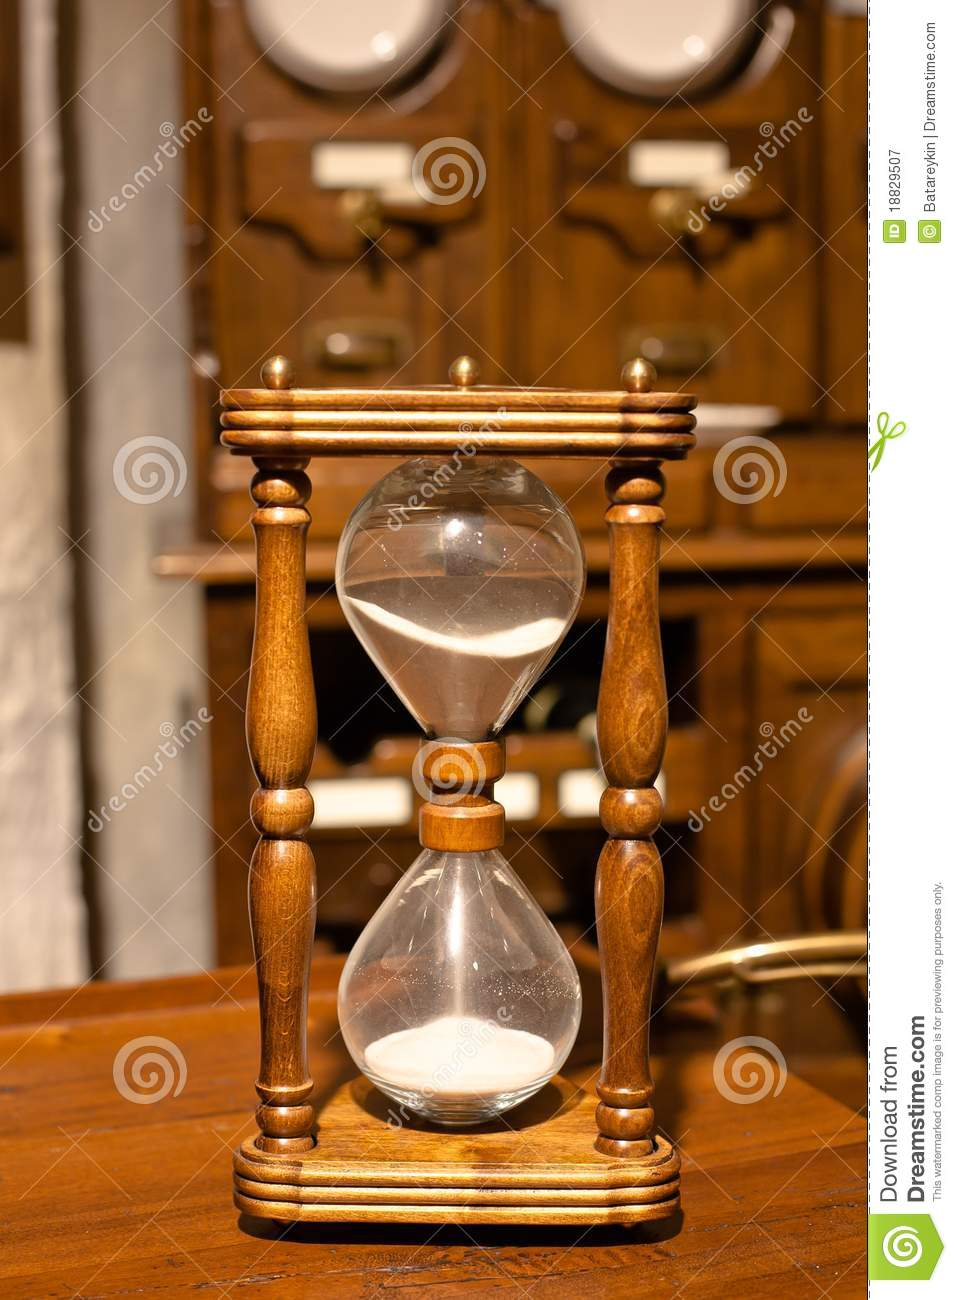 Vintage Wooden Sandglass Royalty Free Stock Photography ...